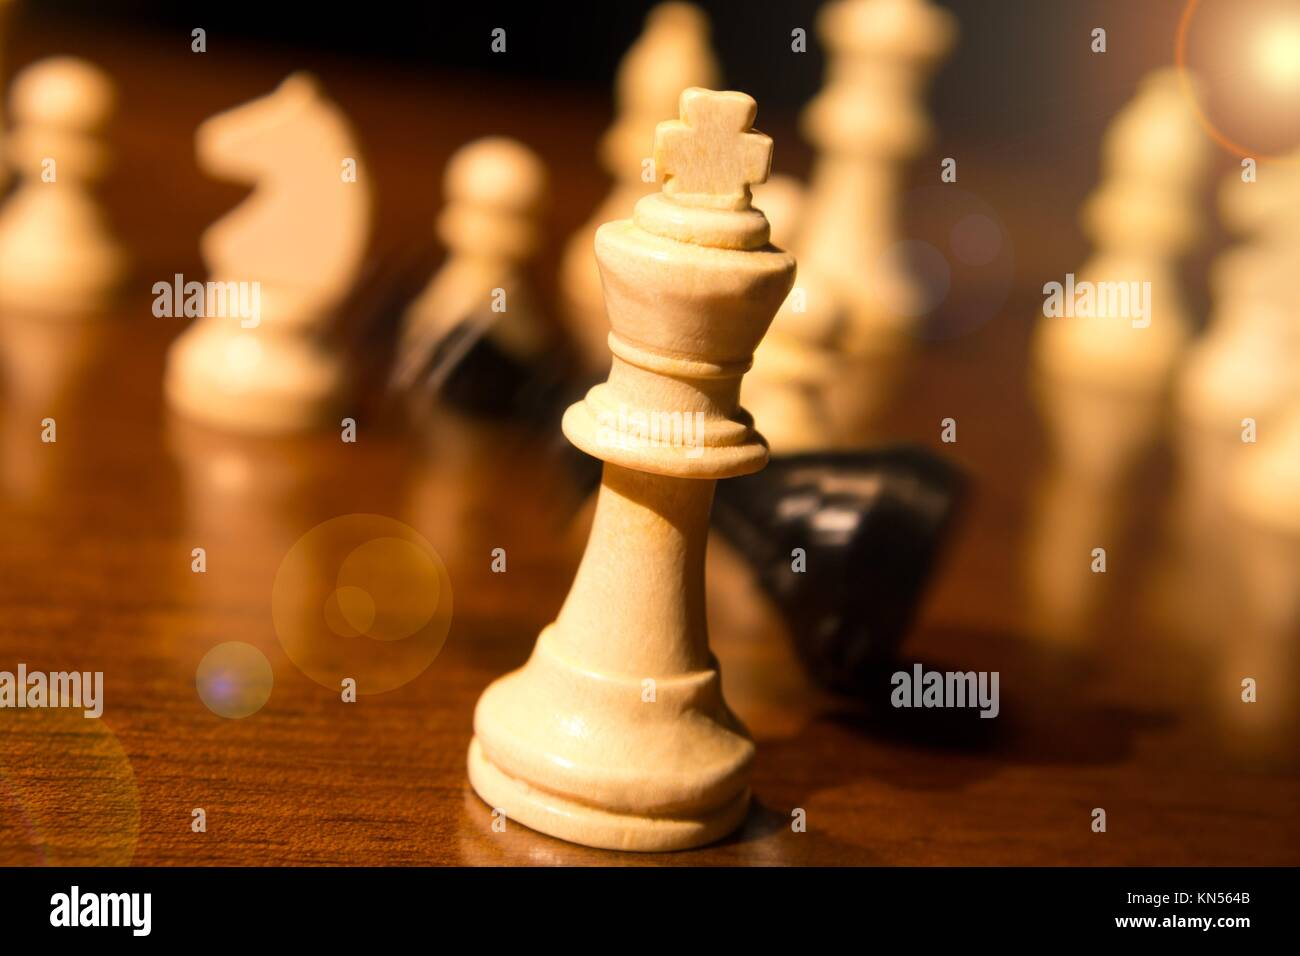 checkmate, falling chess king. - Stock Image